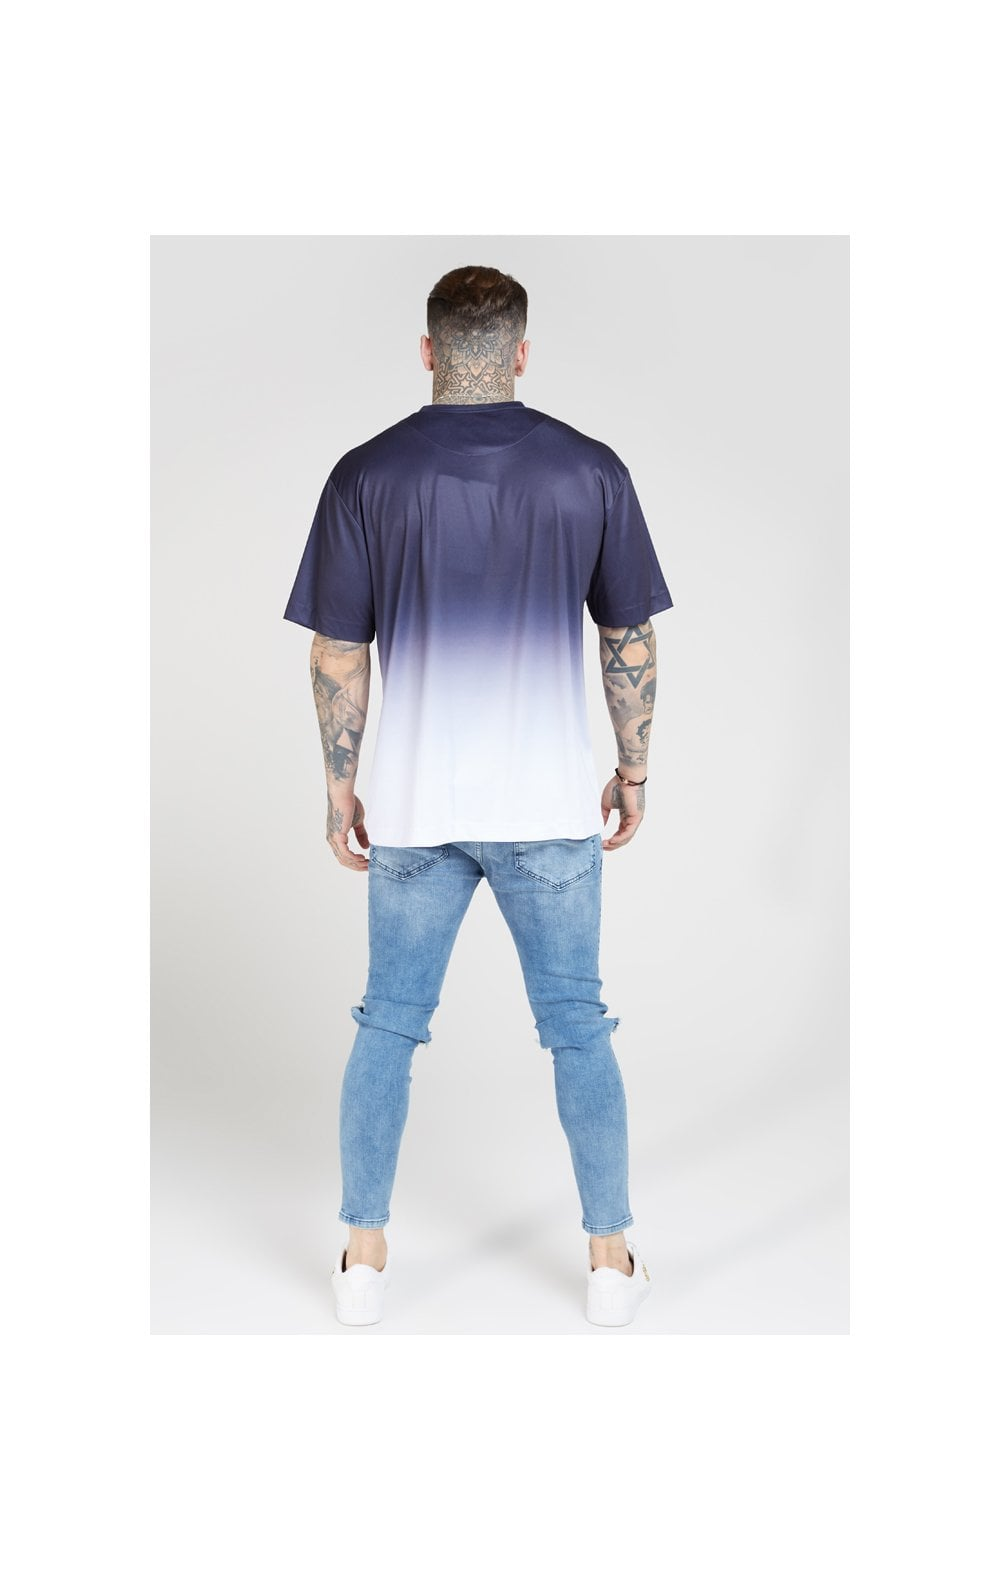 SikSilk S/S Essential Tee - Navy & White (4)